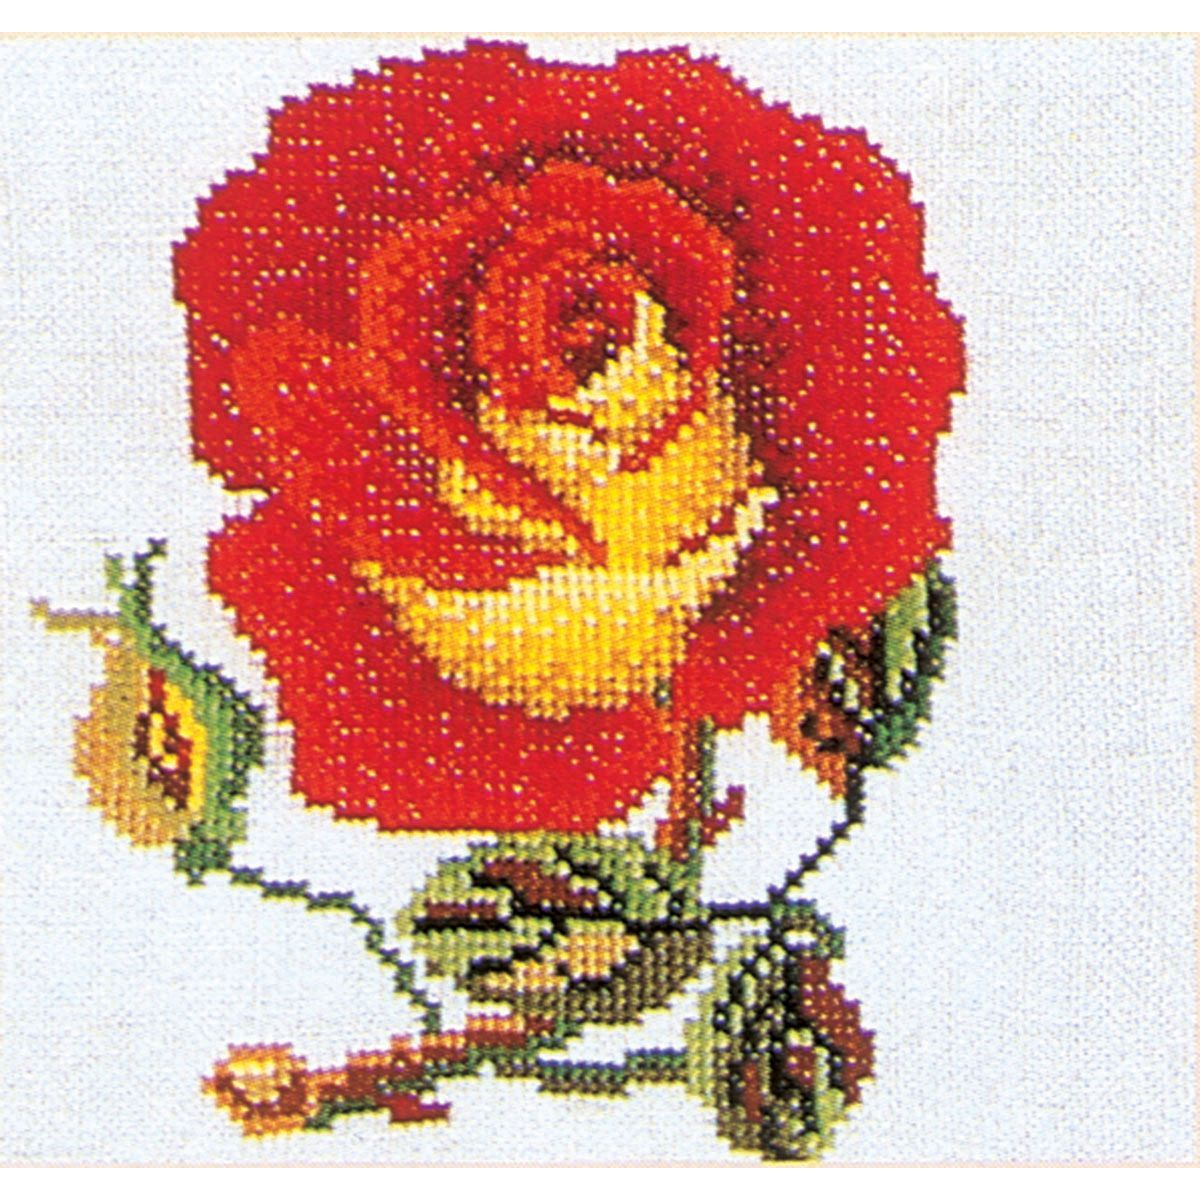 The Thea Gouverneur Red with Yellow Rose On Aida counted-cross-stitch Kit features a stylish design with intricate details that can be replicated beautifully using a variety of colors. This counted-cr